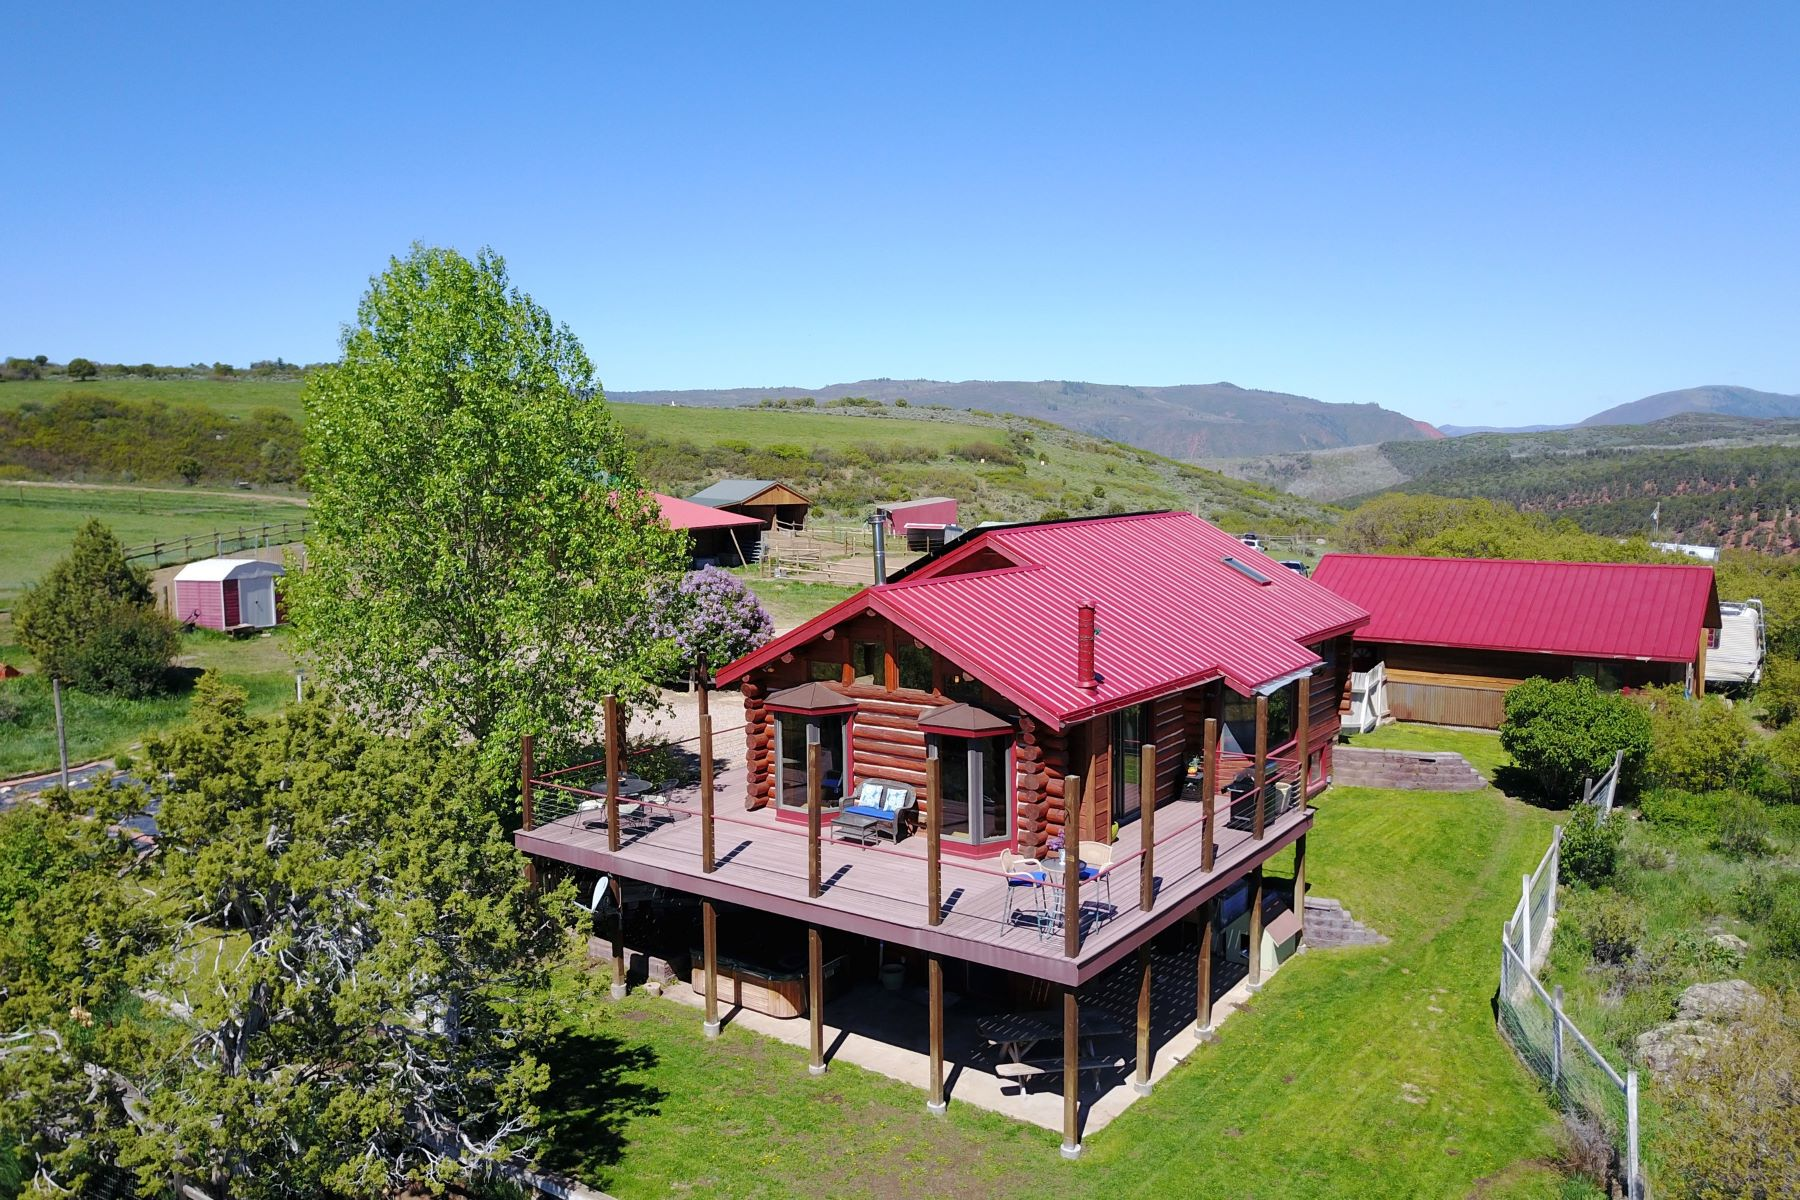 Single Family Home for Sale at Custom Country Horse Property 0263 CR 119 Glenwood Springs, Colorado, 81601 United States